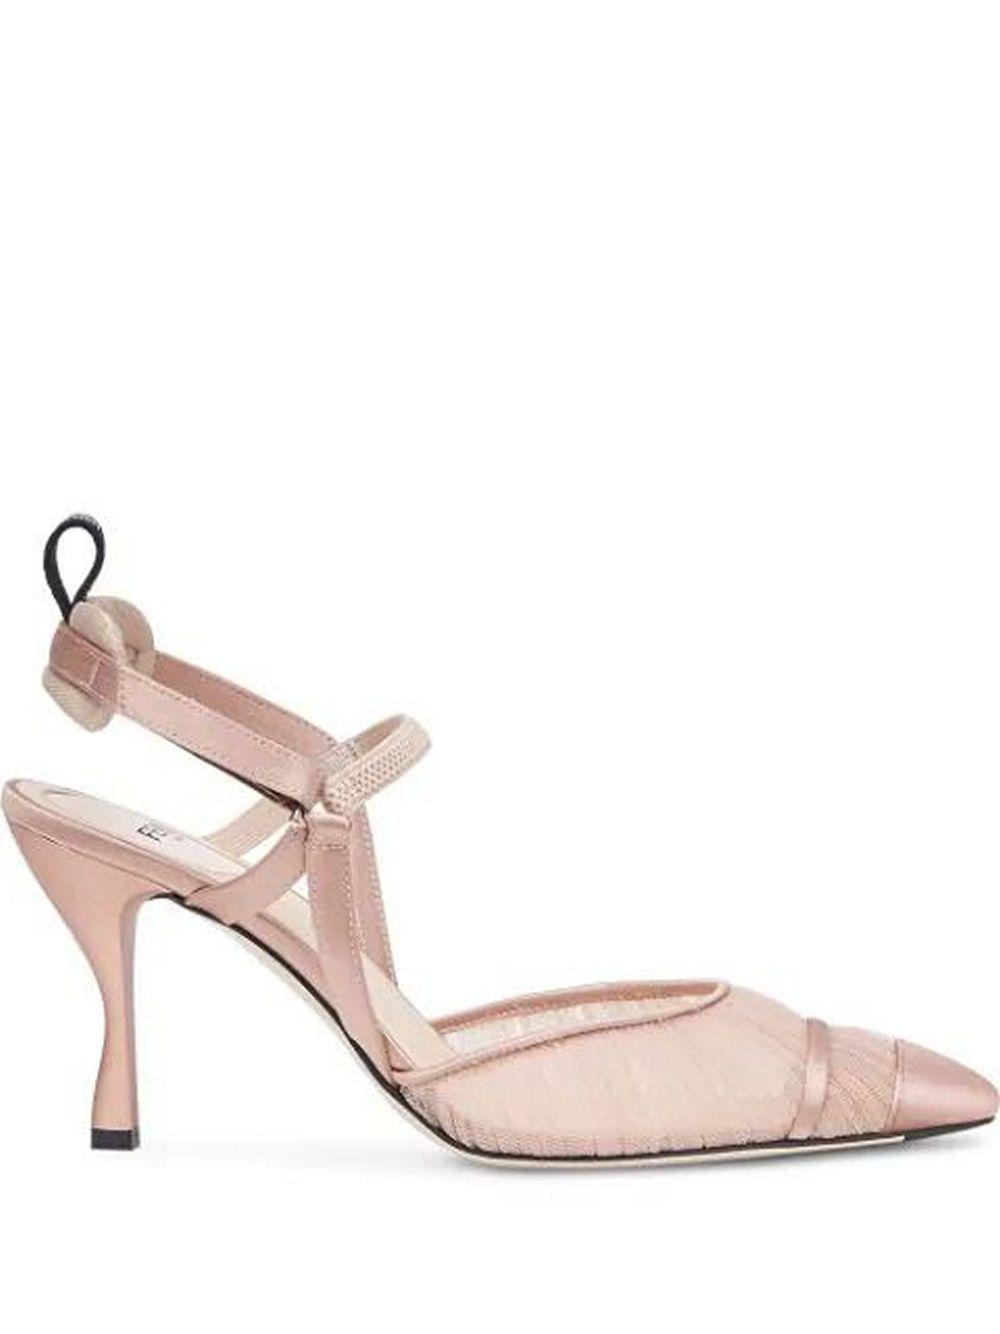 Rouched Tulle 60mm Evening Slingback Heel Item # 8J8040-AC87